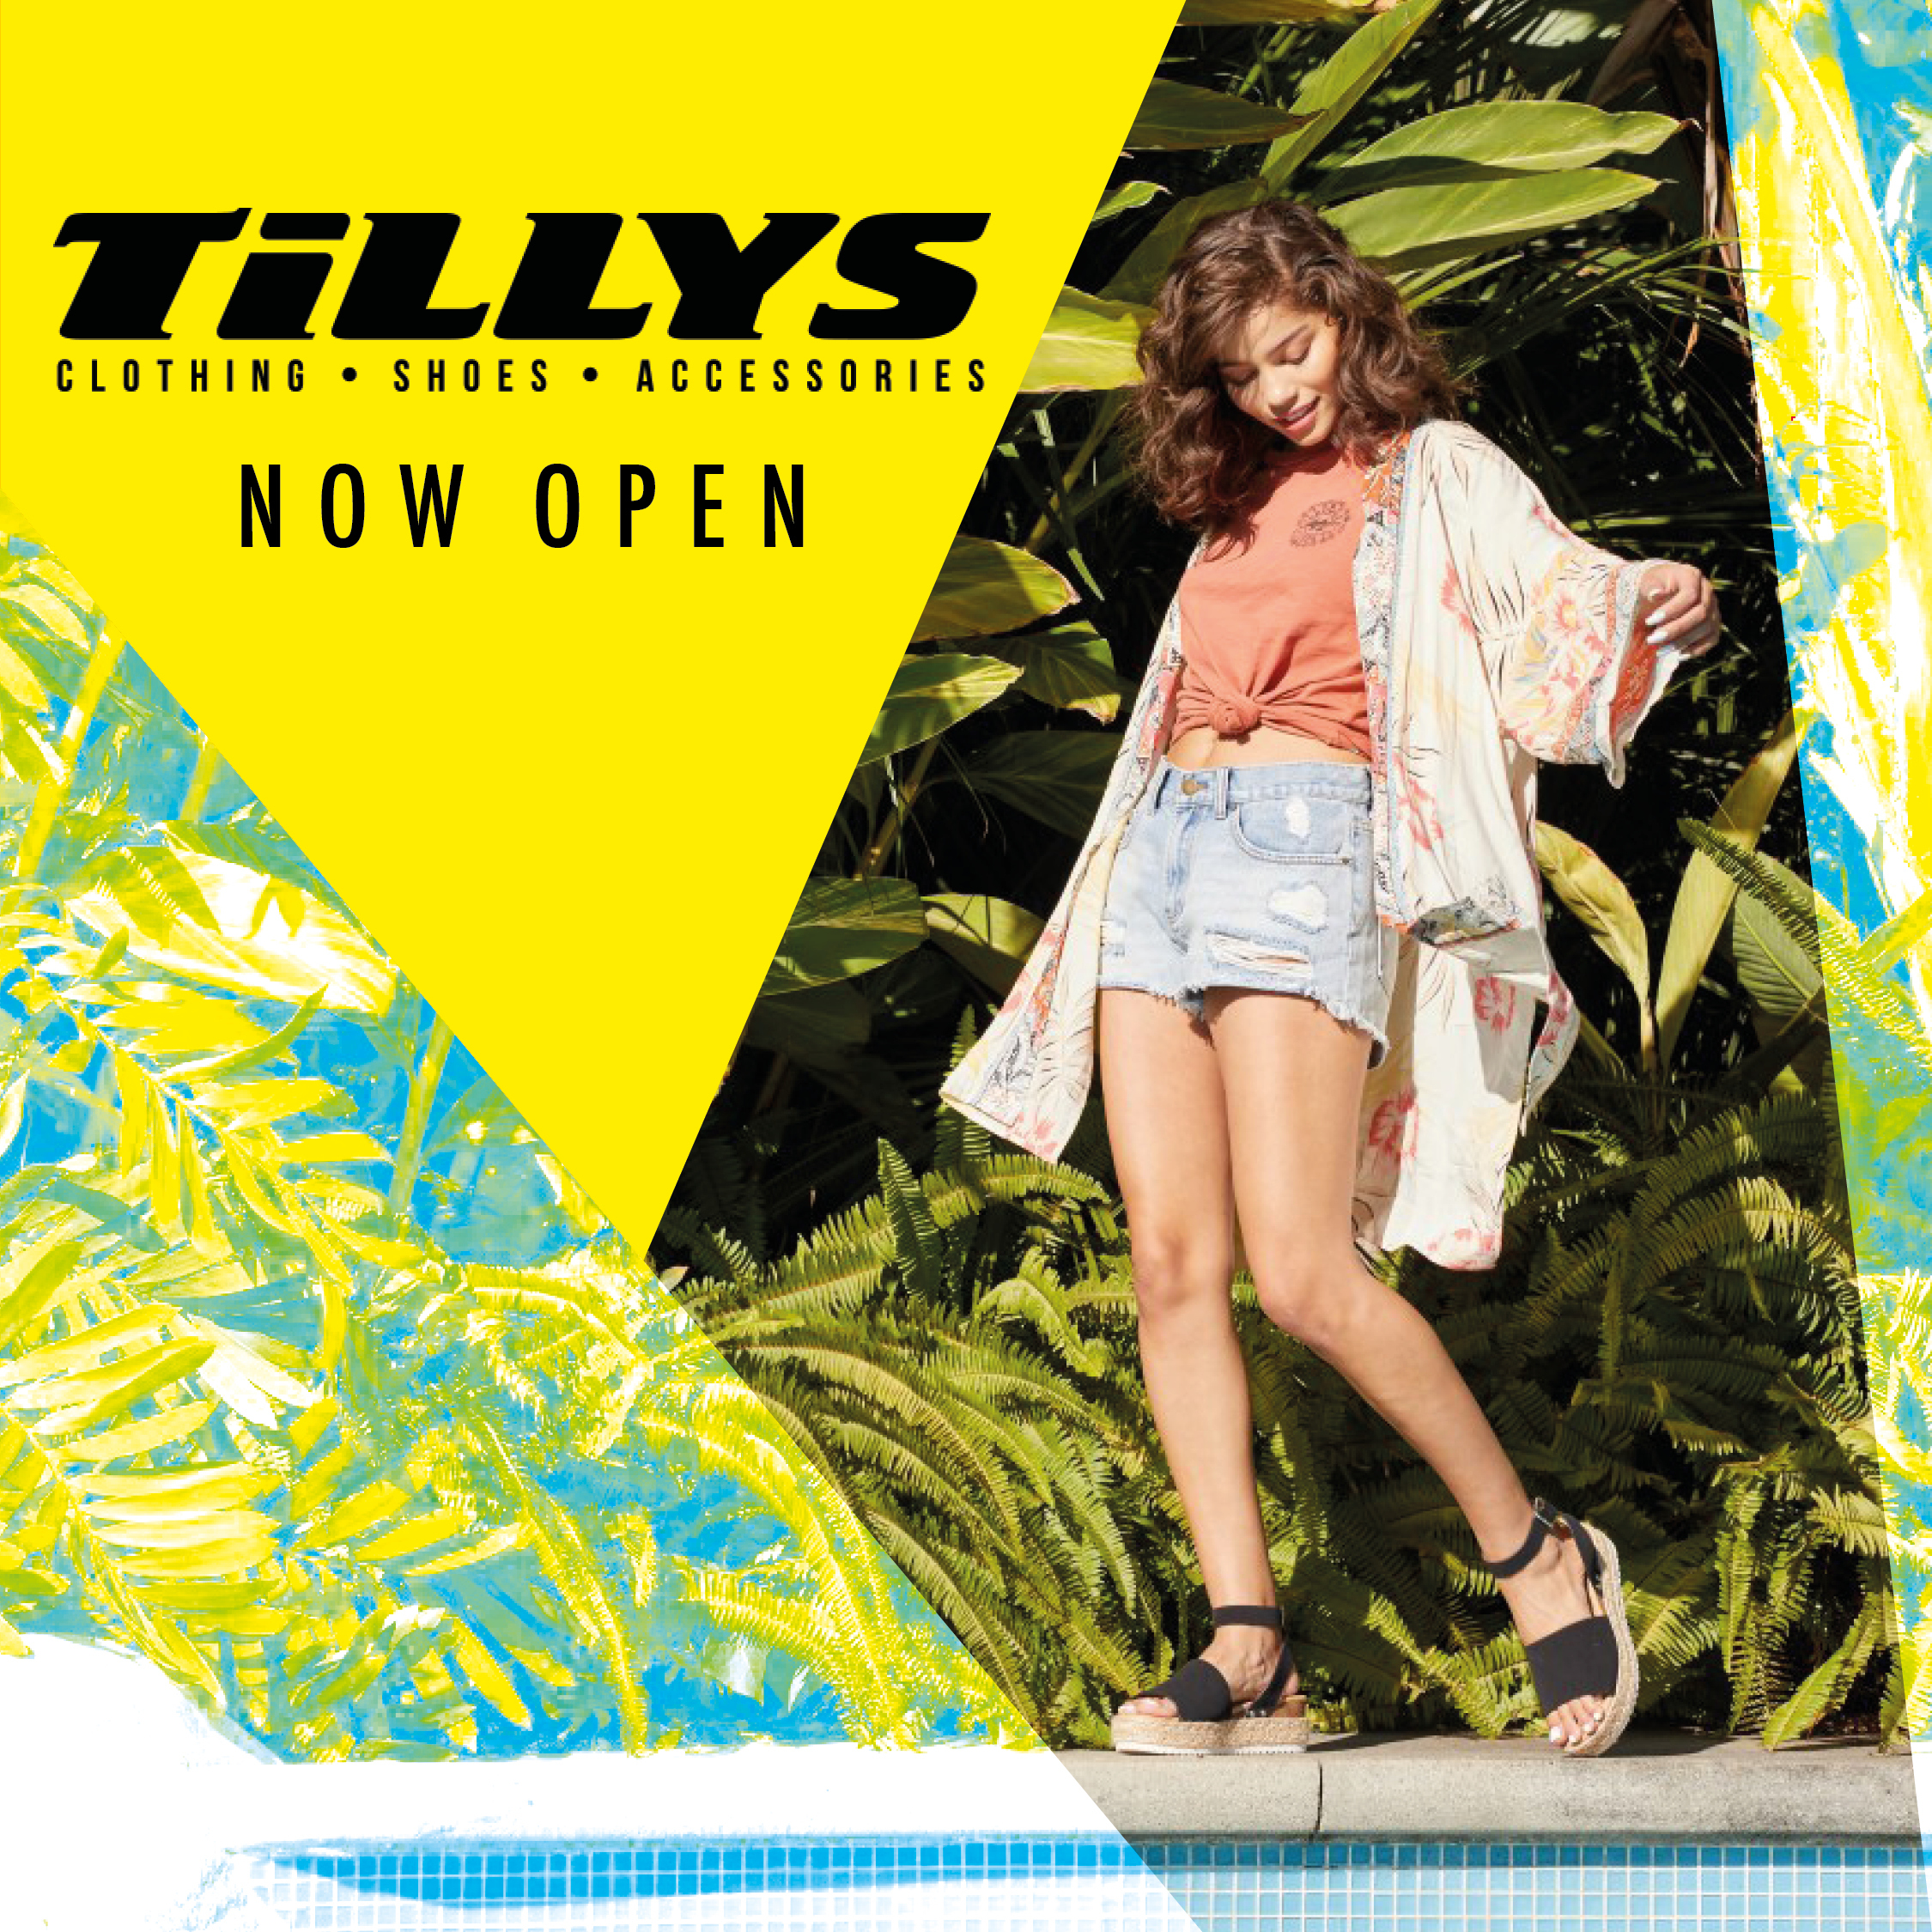 IG Header_Tillys_NOW OPEN